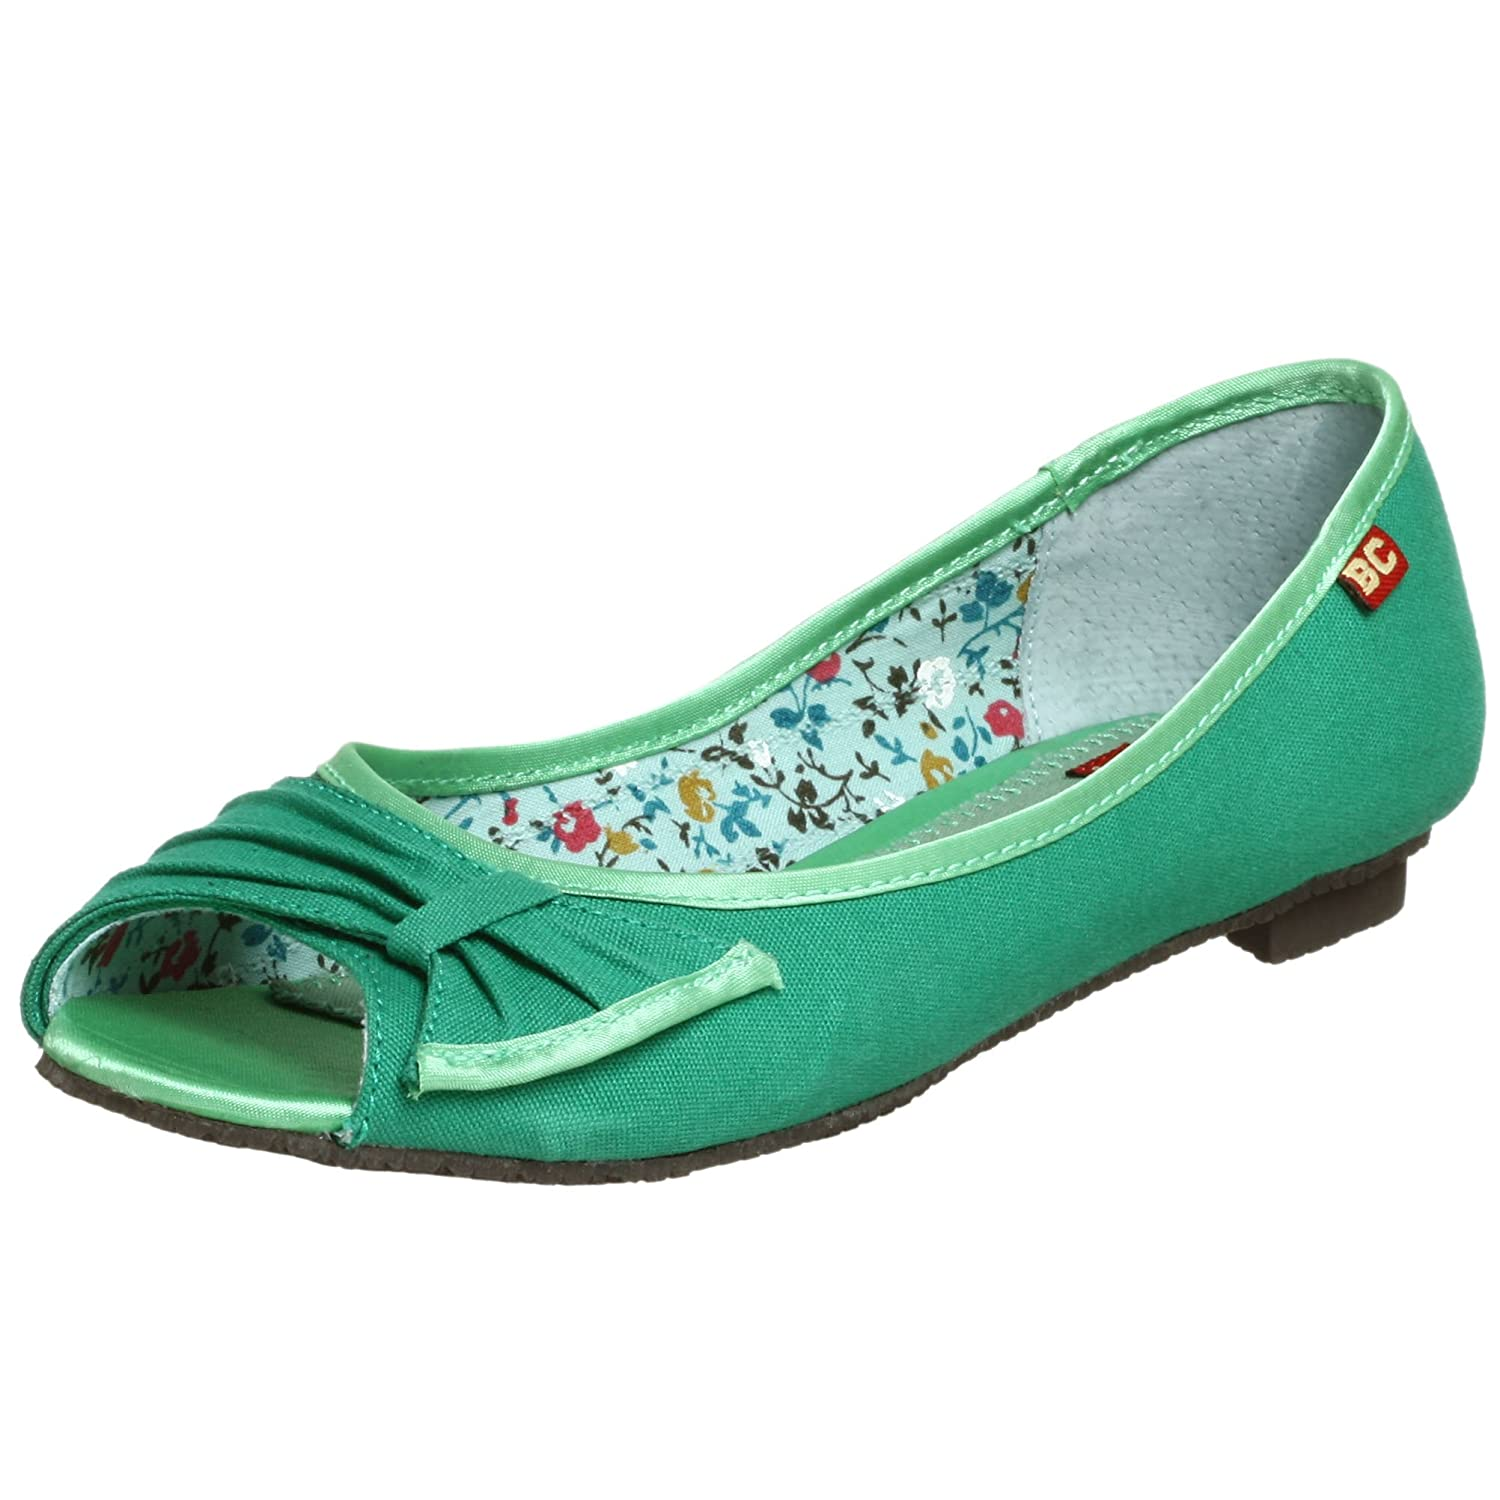 BC Footwear Women's Bangs Flat - Free Overnight Shipping & Return Shipping: Endless.com :  kitten heels retro flats shoes